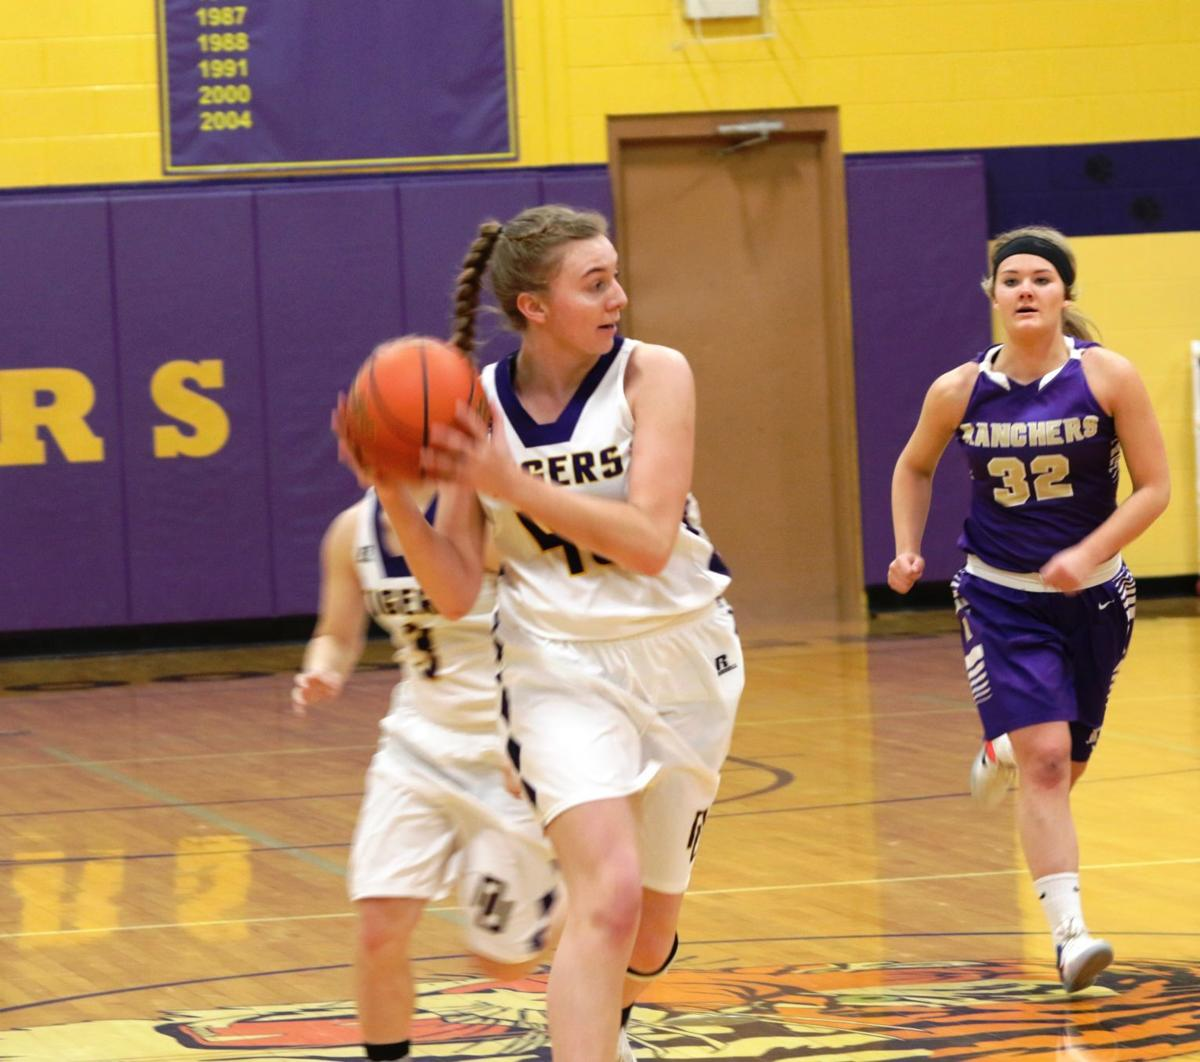 - New Underwood – Stacy Finkbeiners crew went 17-5, the scary thing for the rest of region 7B have all of their firepower coming back...Jaedyn Finkbeiner 6-footer 17.6 and 11 rpg senior....Sophomore 6-footer Cerrington Jones is a tremendous athlete 12.6 per game....and 6.8 rebounds...A lot of talented sophomores saw a lot of playing time